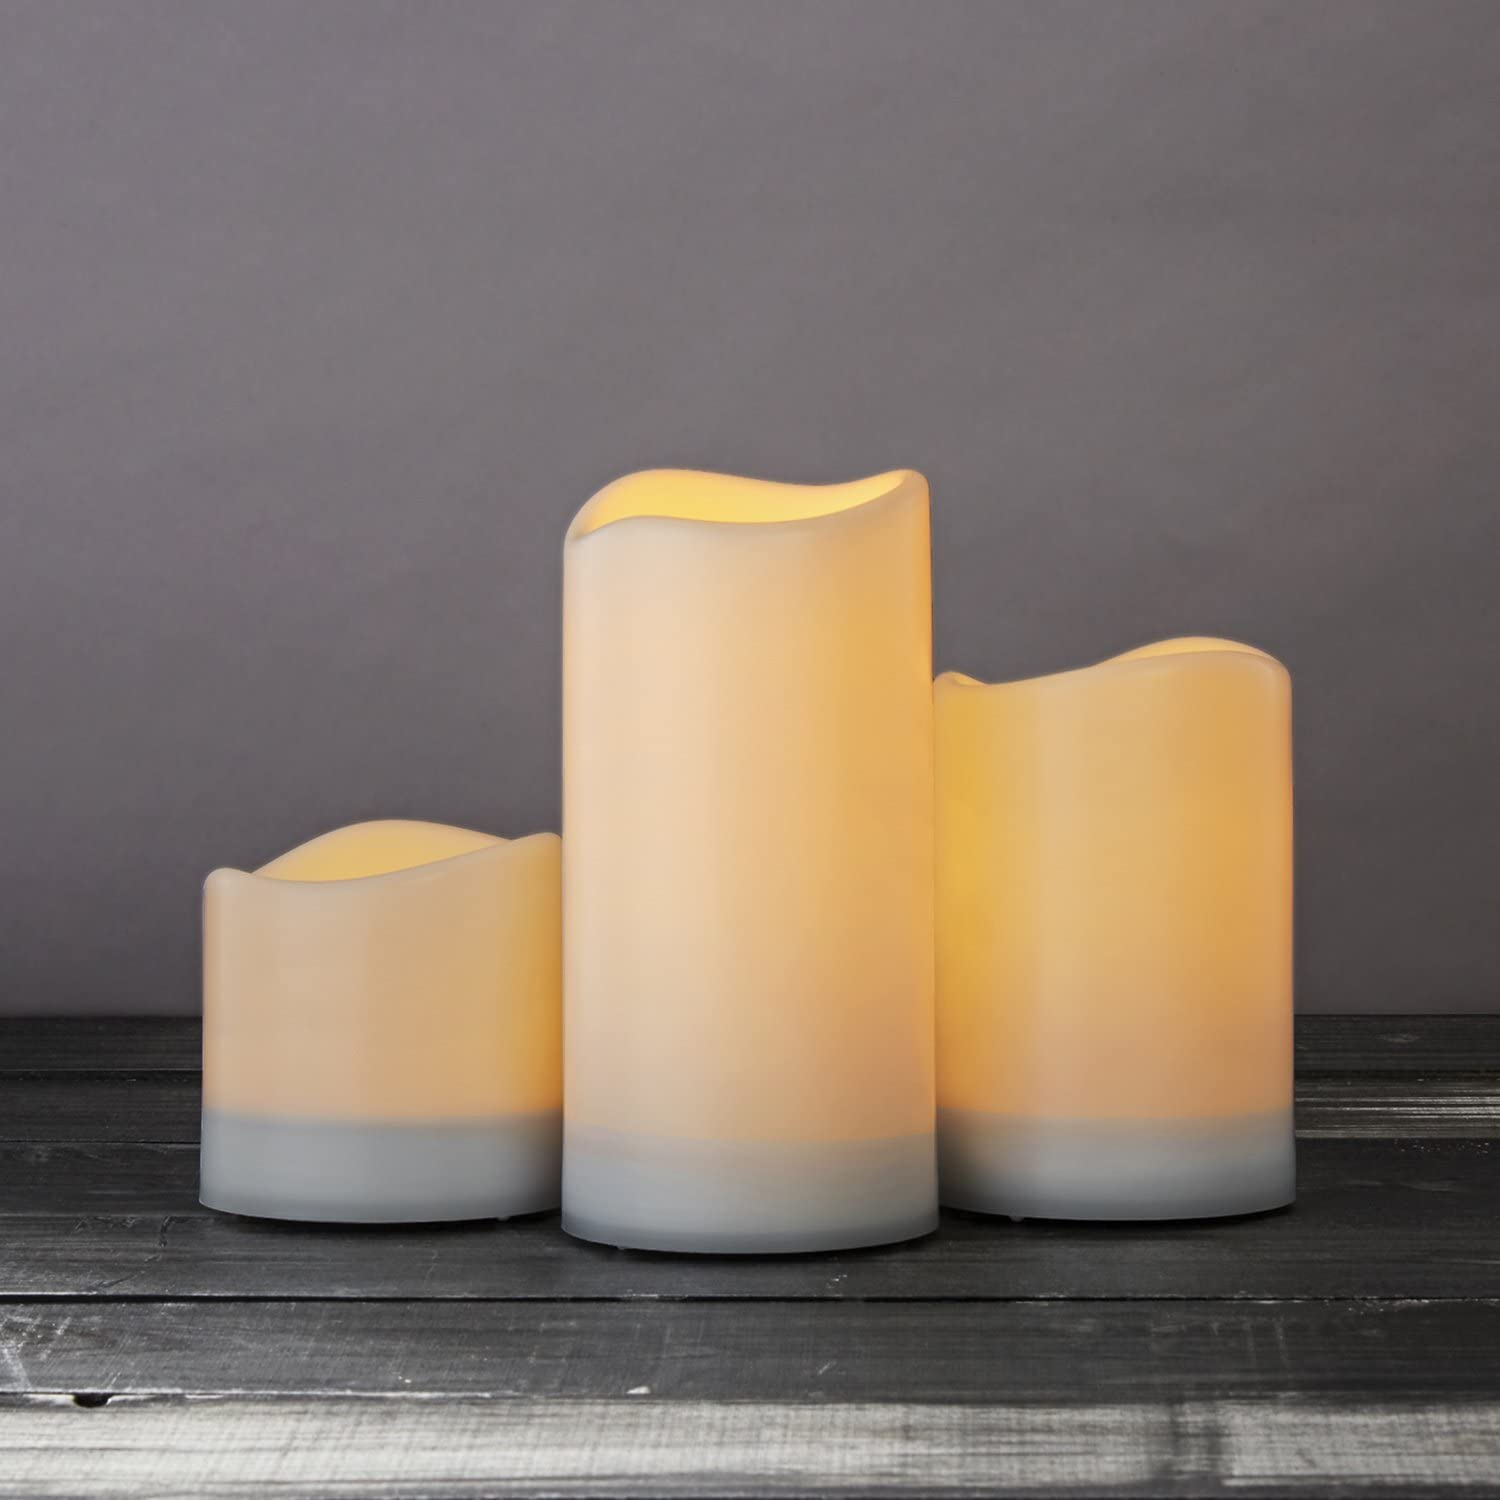 Outdoor Solar Powered Candles - Large LED Flameless Pillar, 4 Inch Diameter, Flickering Warm White Light, Dusk to Dawn Timer, Rechargeable Battery Included - Set of 3